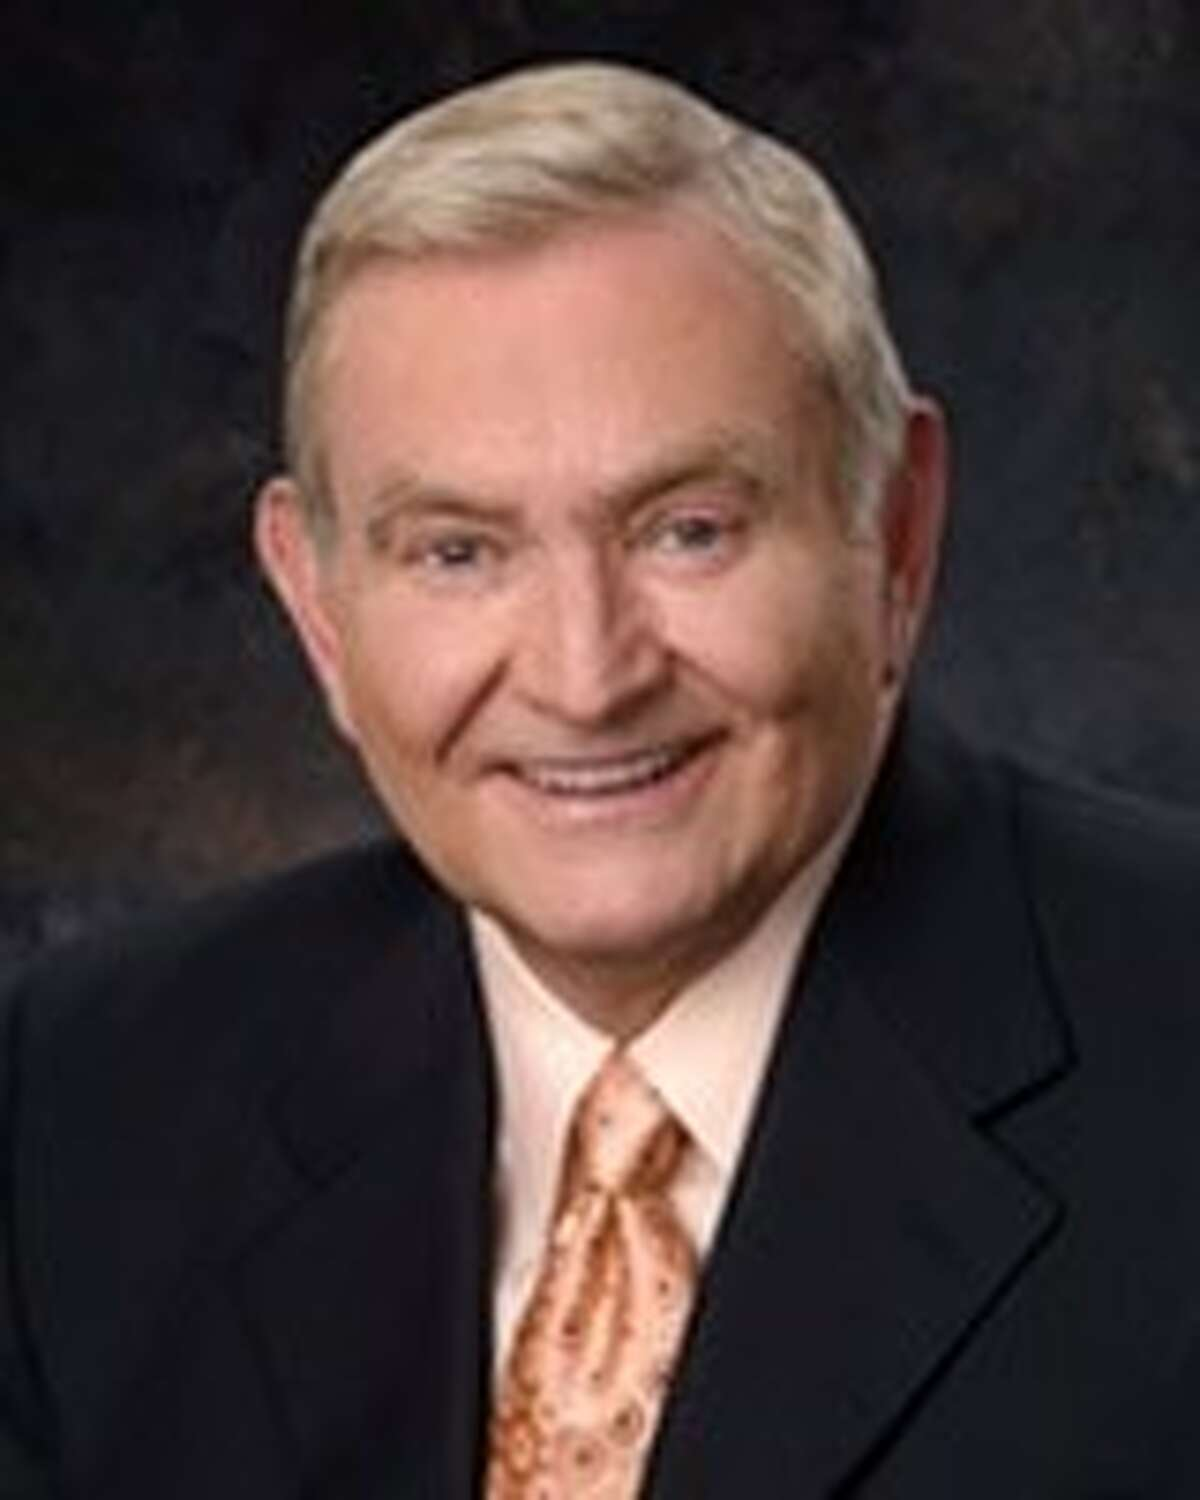 ABC13 Anchor Dave Ward